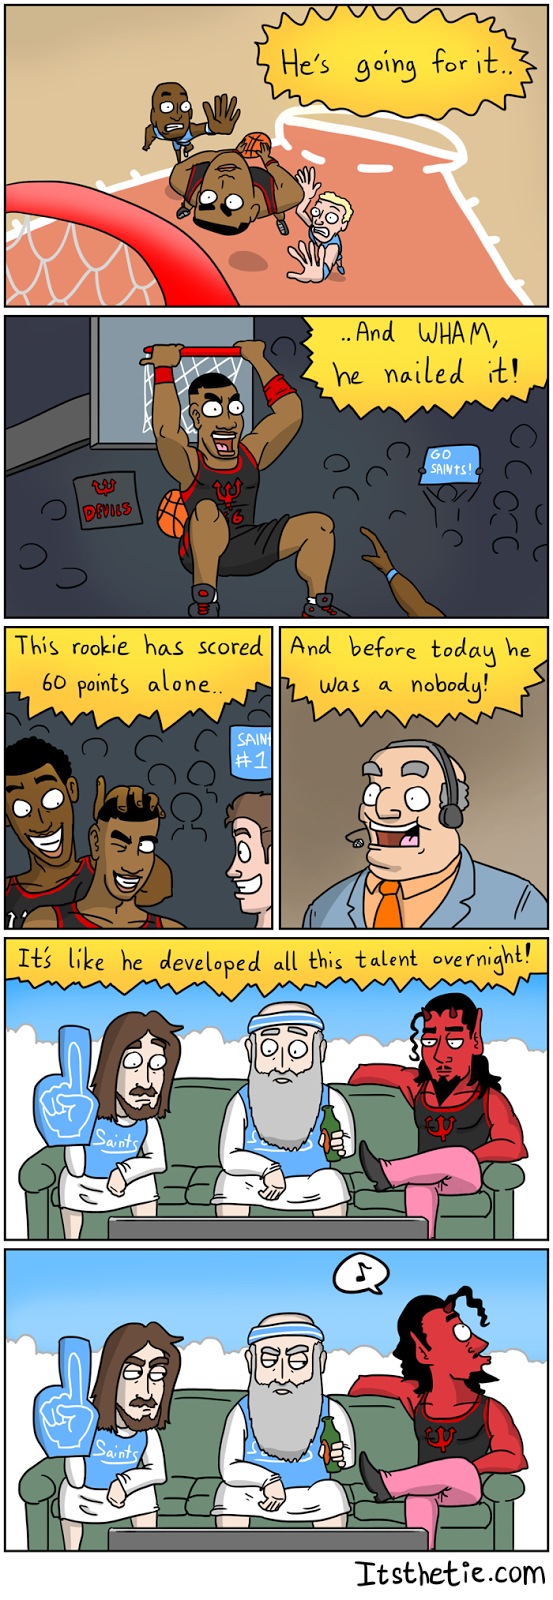 A comic about Satan cheating at sports